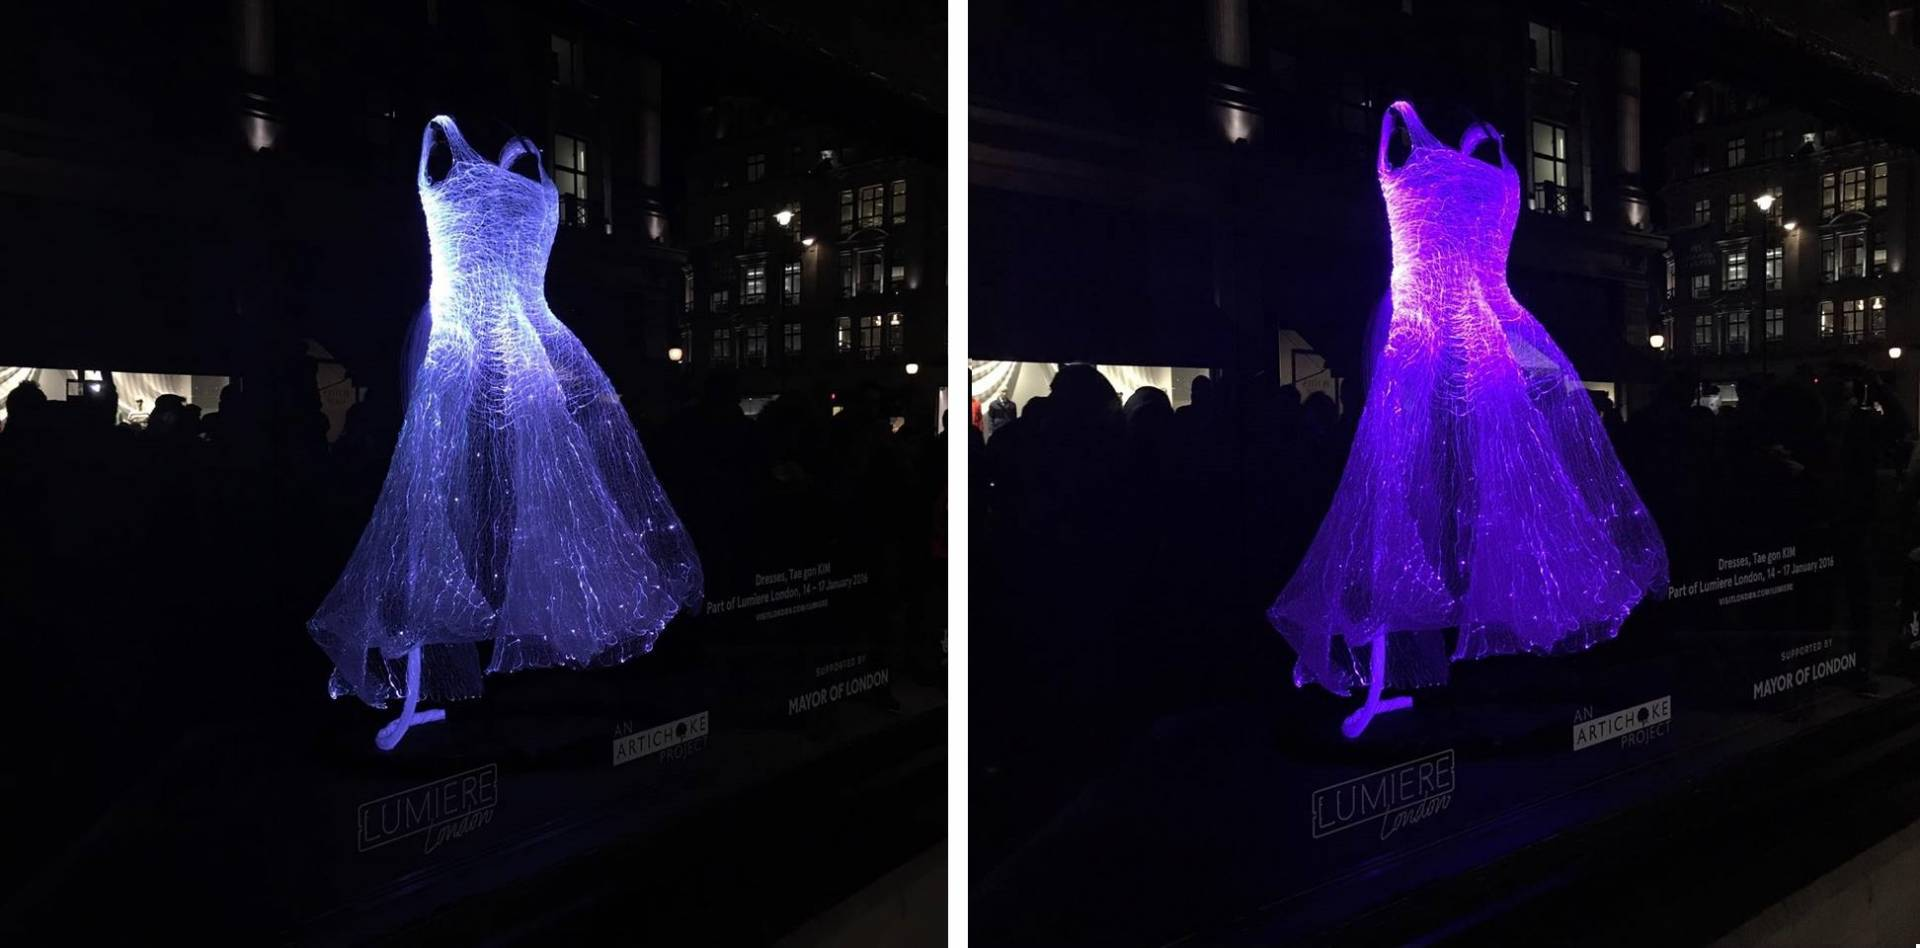 Dresses, Tae gon KIM @ Great Malbourough Street, for Lumiere London